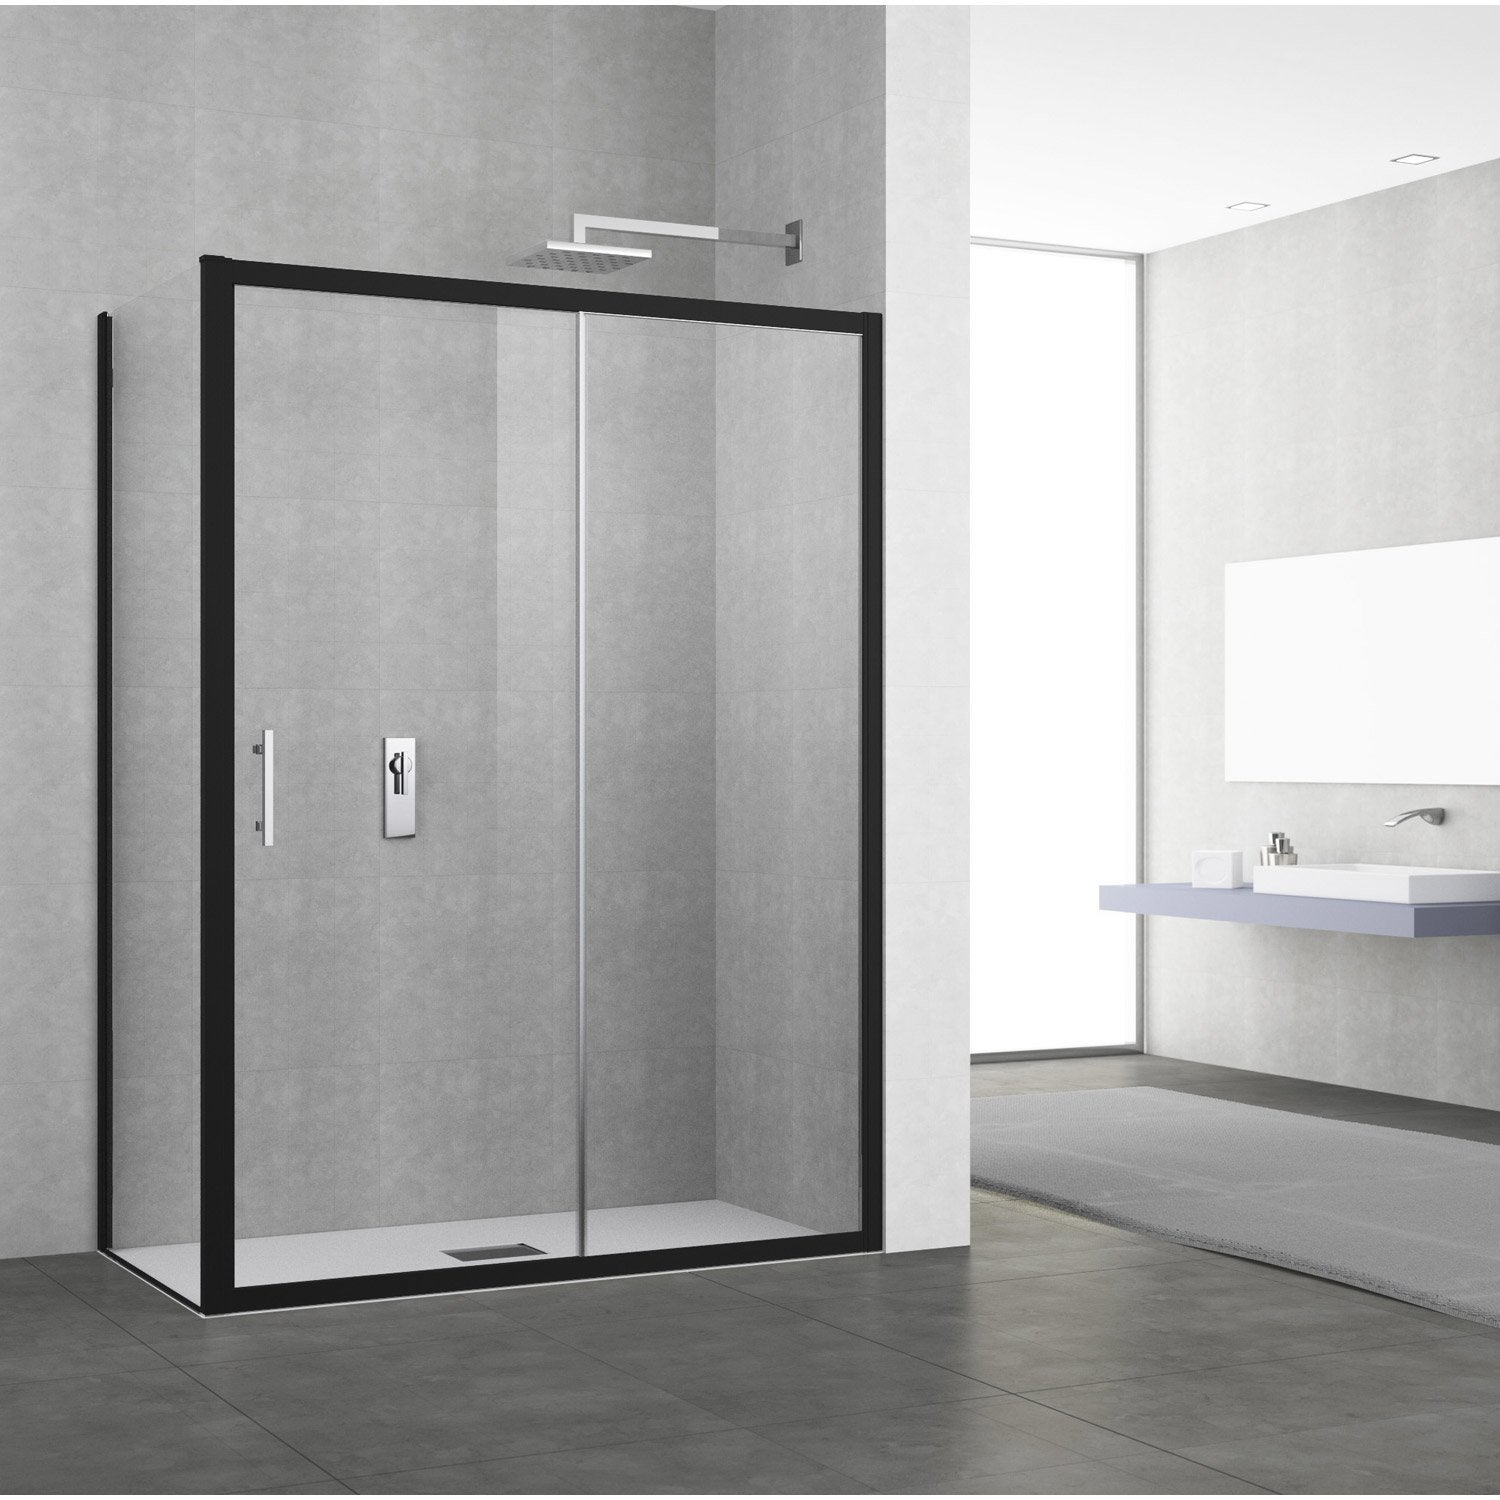 porte de douche coulissante 134 140 cm profil noir elyt 2 pnx leroy merlin. Black Bedroom Furniture Sets. Home Design Ideas